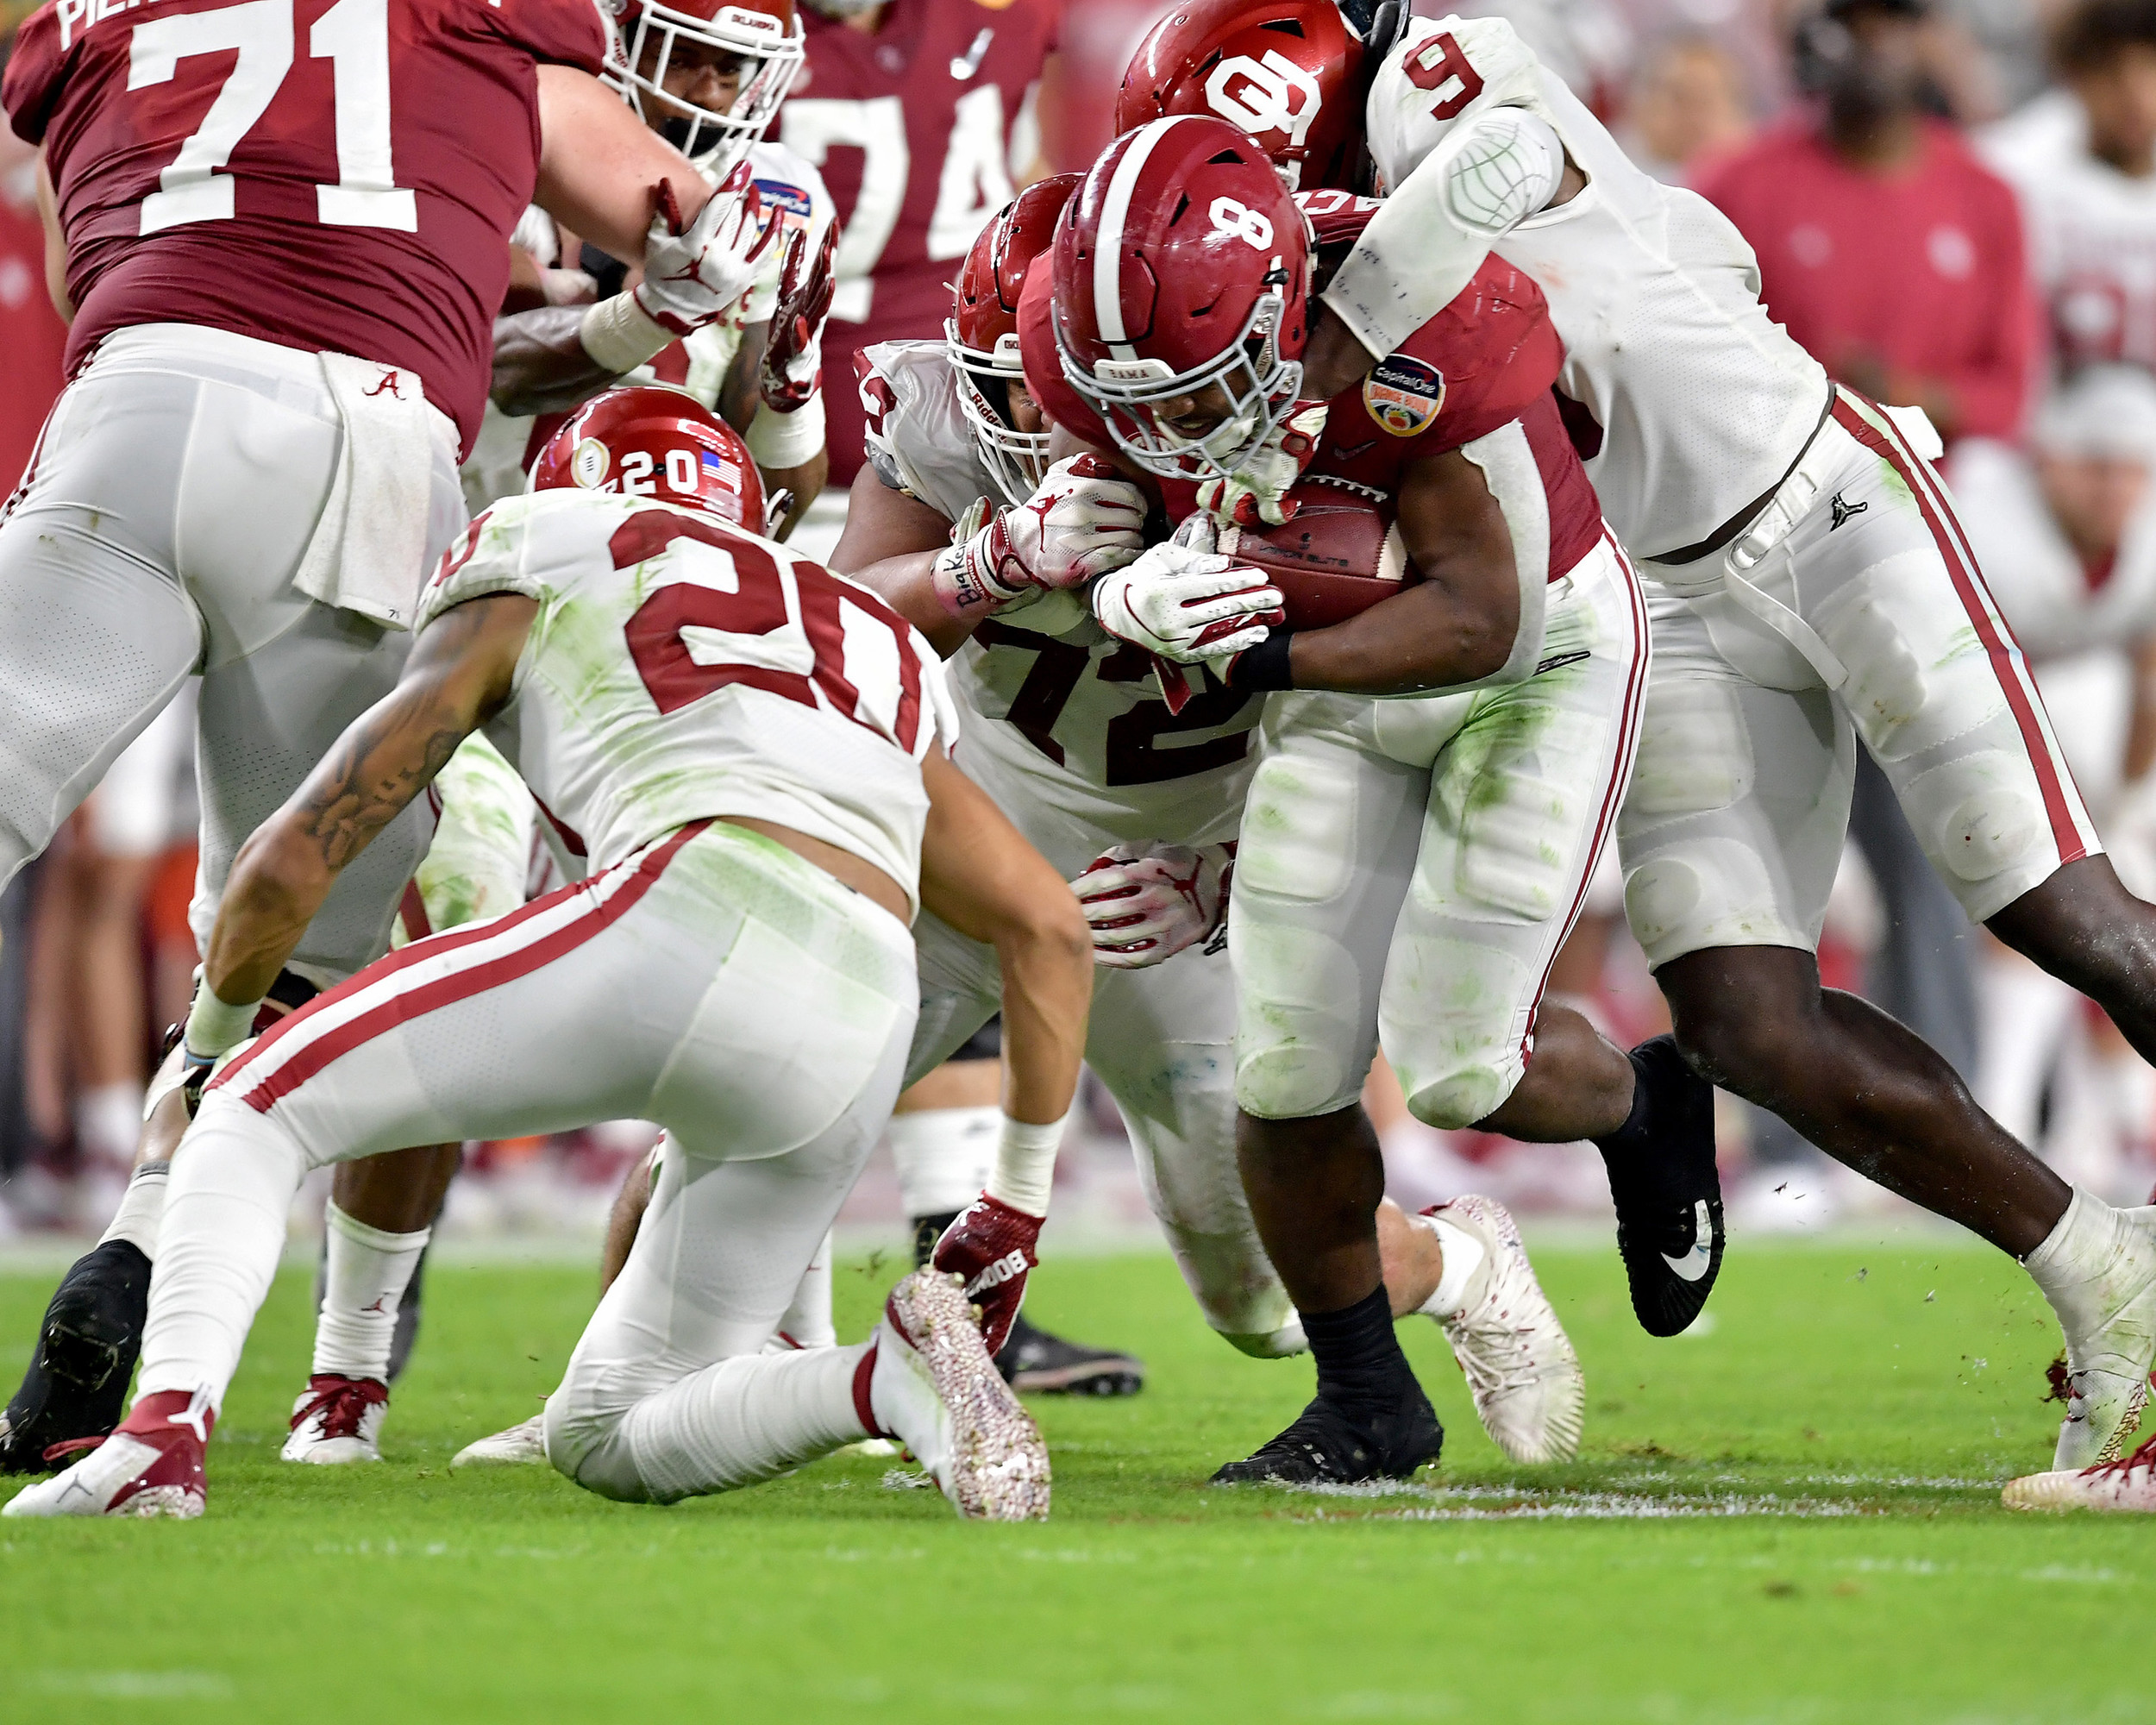 Alabama Crimson Tide running back Josh Jacobs (8) powers up the middle during the first half of the Capital One Orange Bowl, featuring Alabama and the Oklahoma Sooners, at Hard Rock Stadium in Miami Gardens, Fla., Saturday, Dec. 29, 2018. Alabama wins 45-34. (Photo by Lee Walls)